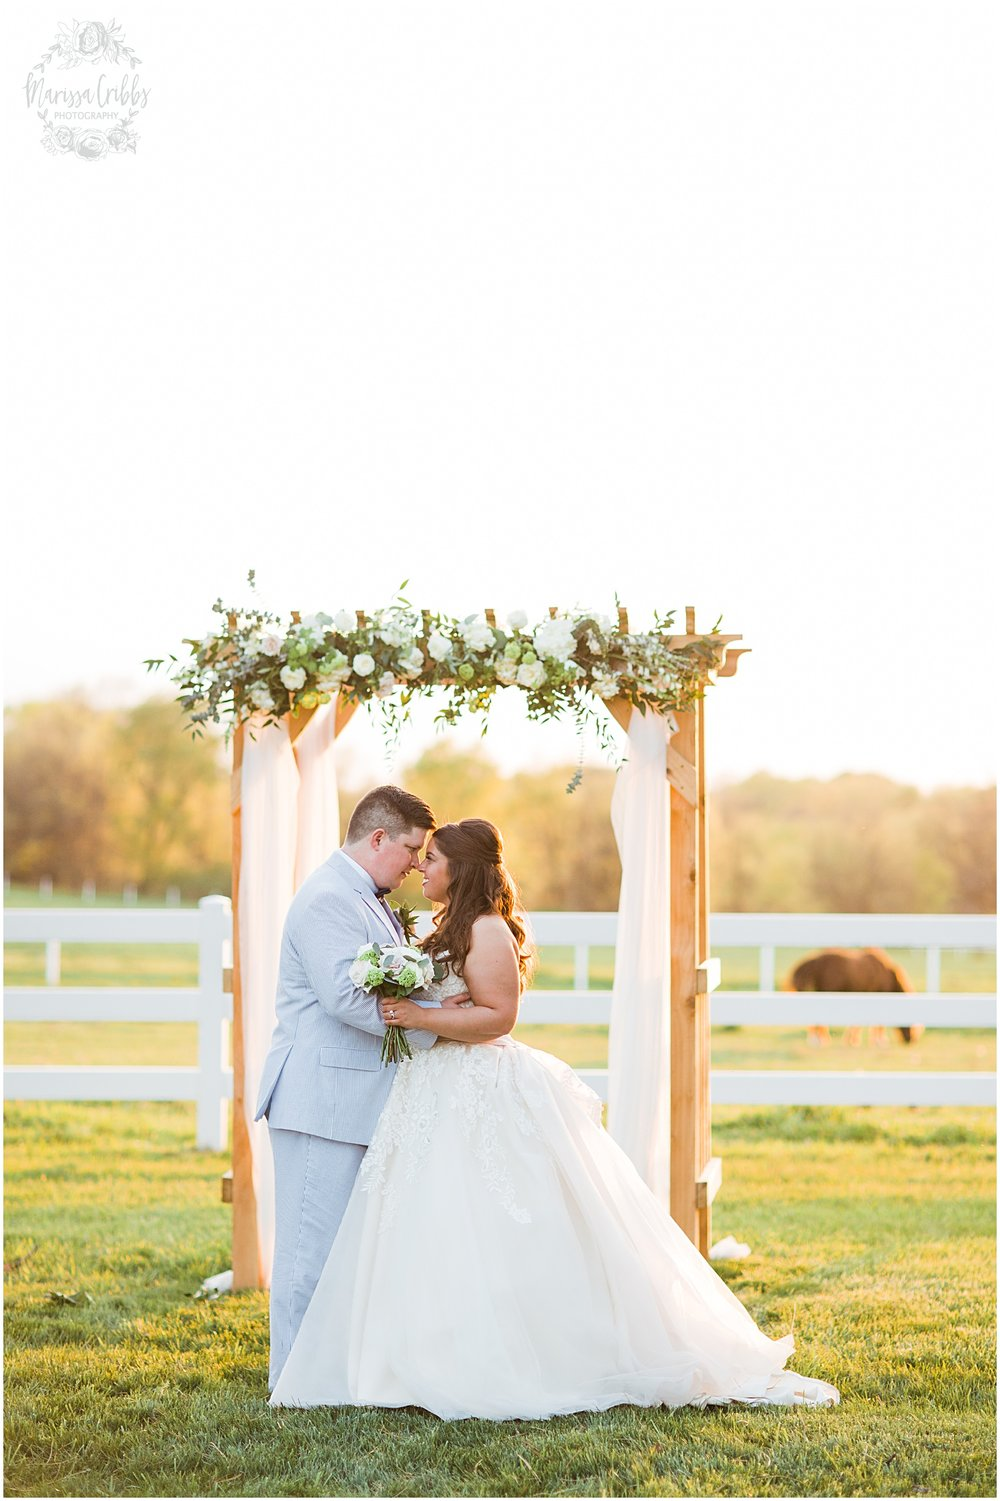 ANDREA & MICHAEL WEDDING | HICKORY CREEK RANCH | MARISSA CRIBBS PHOTOGRAPHY_4908.jpg